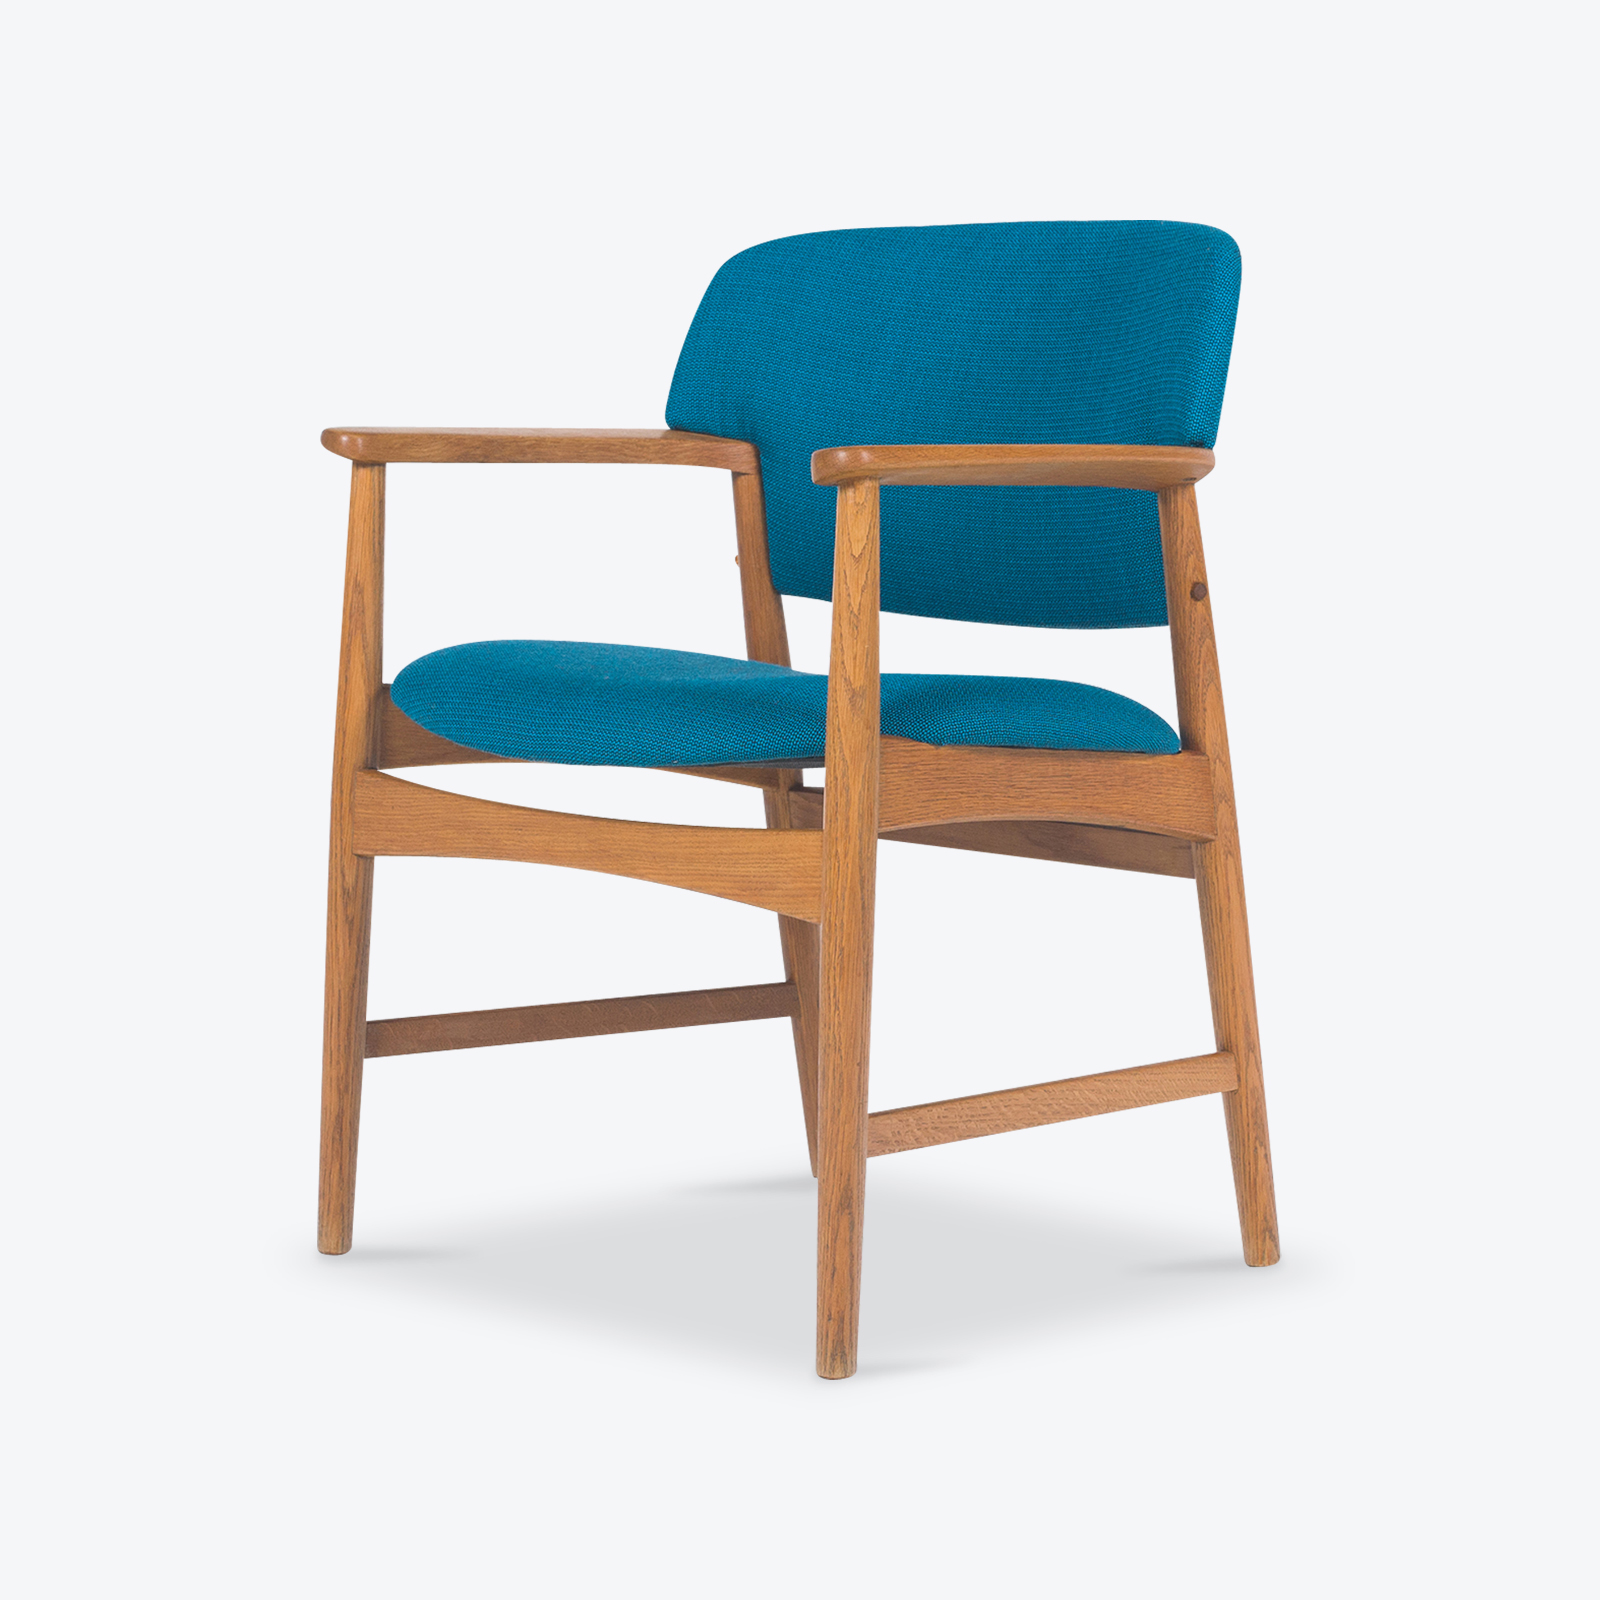 carver-chair-in-oak-with-new-kvadrat-upholstery-  sc 1 st  Modern Times : chair upholstery - lorbestier.org